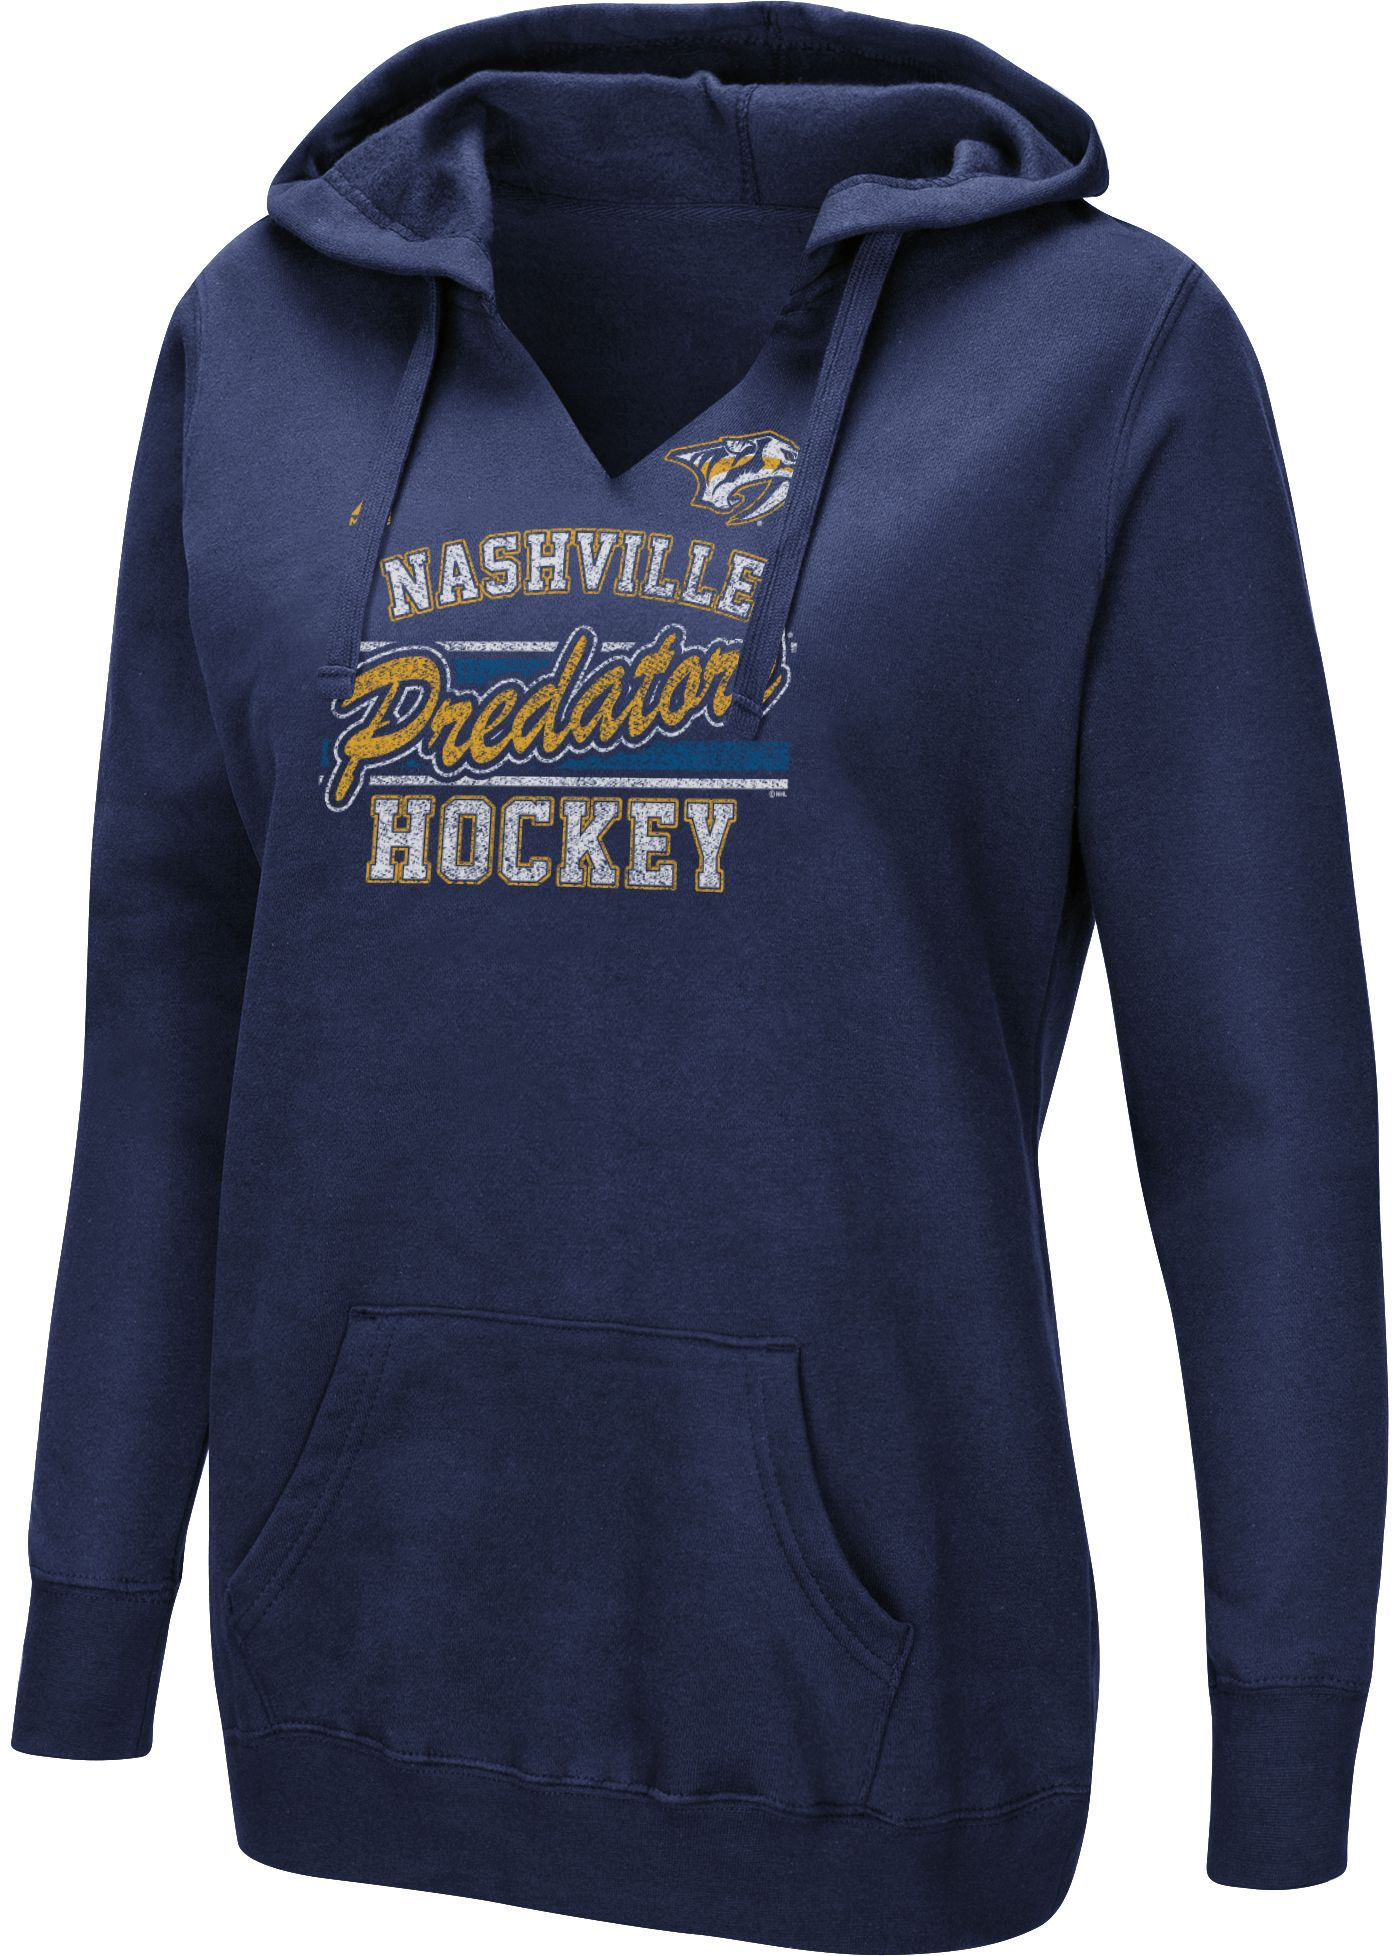 Majestic Women's Nashville Predators Raise The Level Navy Hoodie